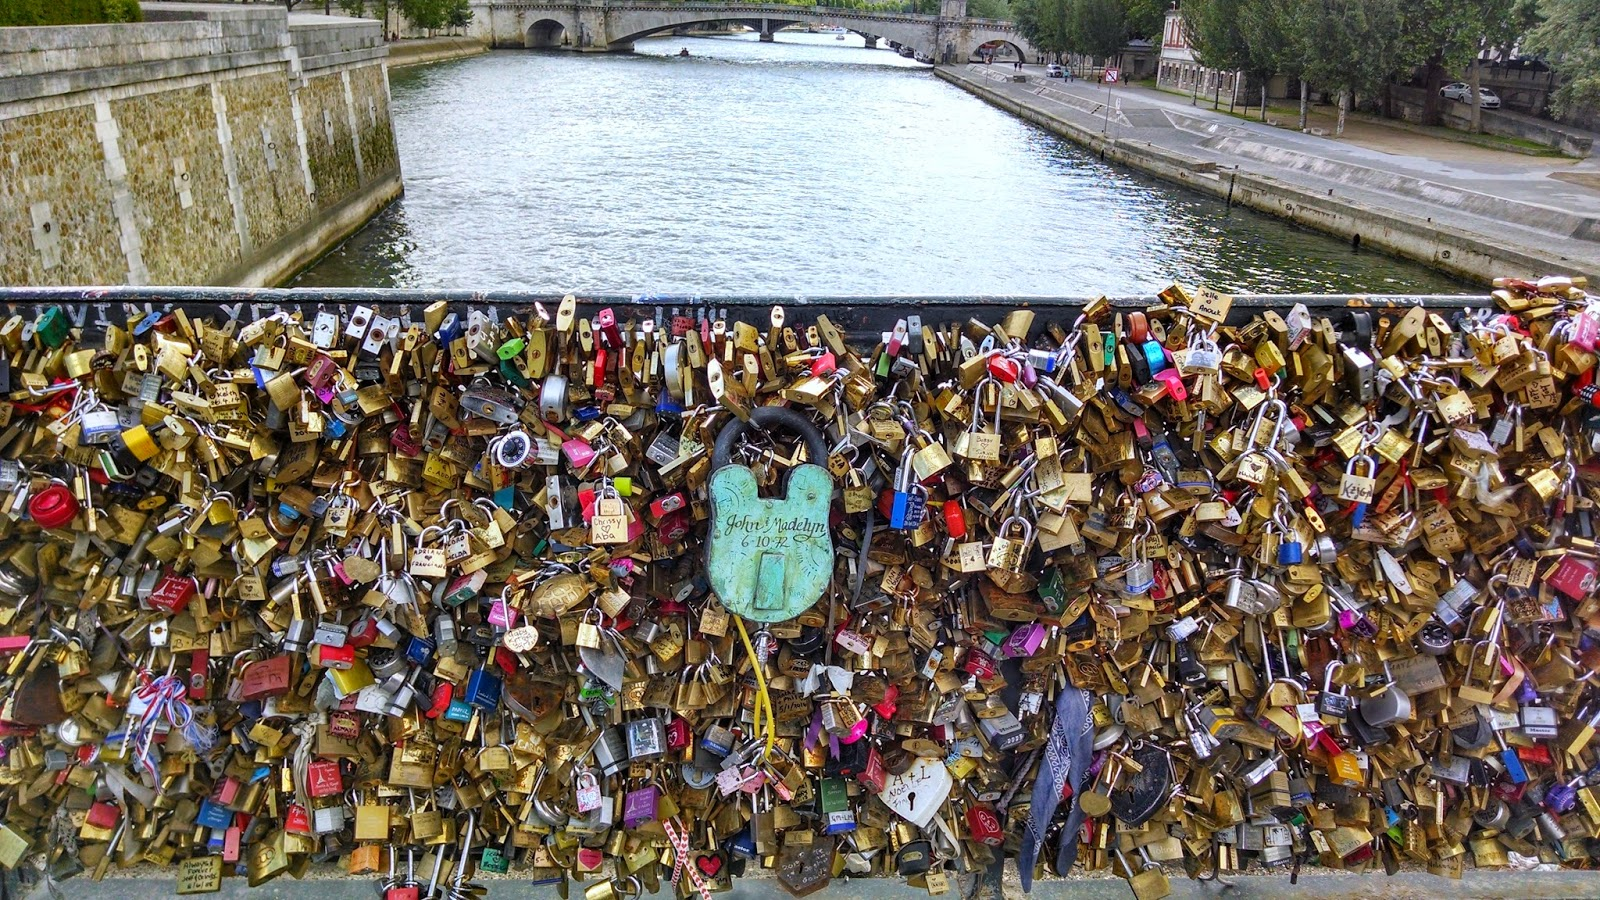 Coming abstractions paris locks of love bridge for Locks on the bridge in paris